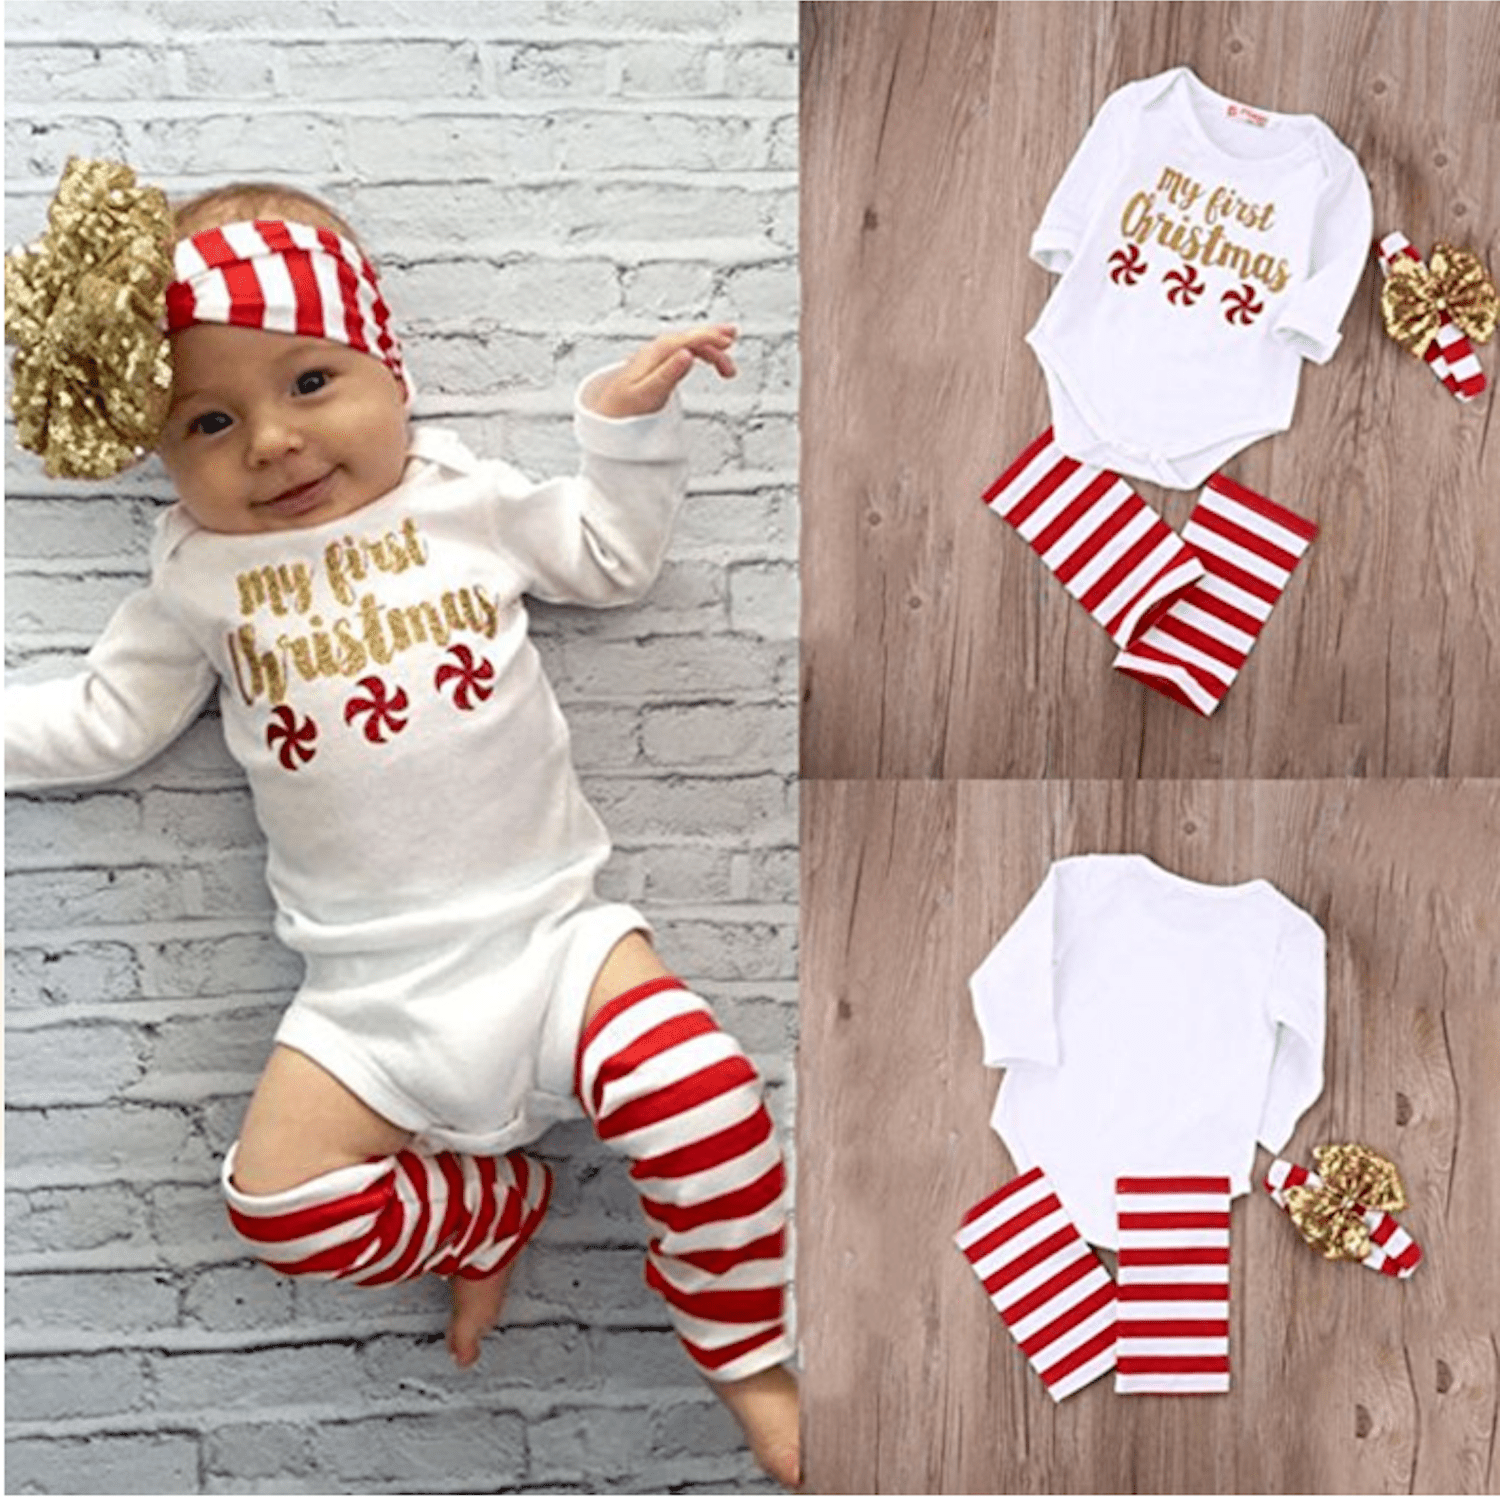 719dcdce5 Weixinbuy Newborn Baby Girl My First Christmas Pattern Bodysuit Romper  Jumpsuit Outfit. Amazon.com